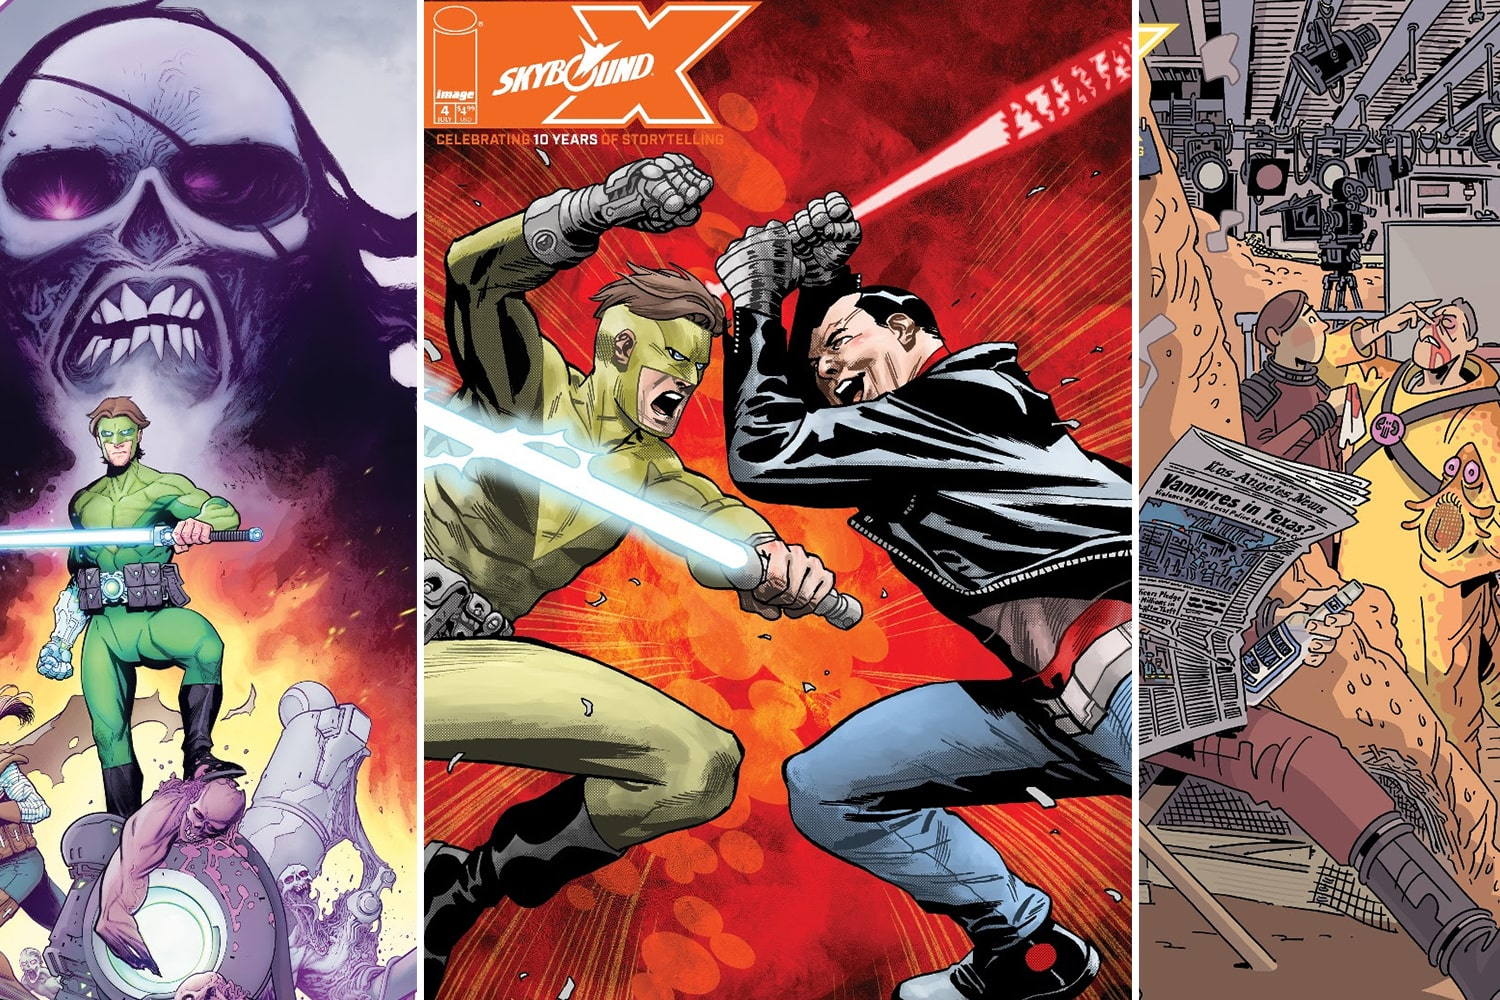 Image Comics reveals more 'Skybound X' covers ahead of its July 7th launch